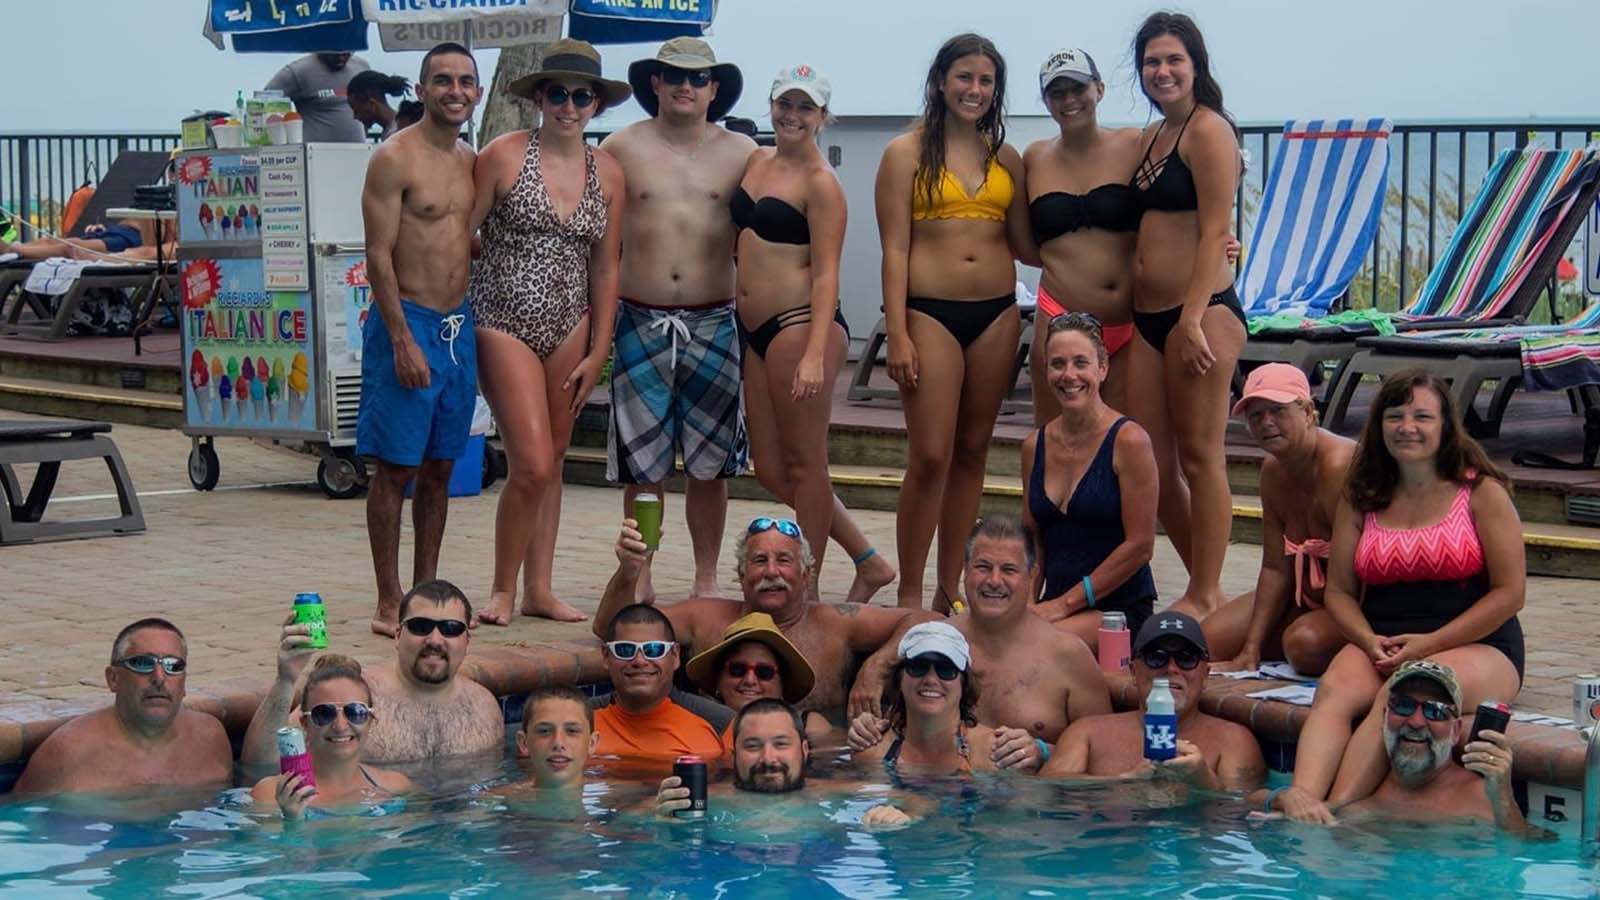 Big group posing for picture at the pool